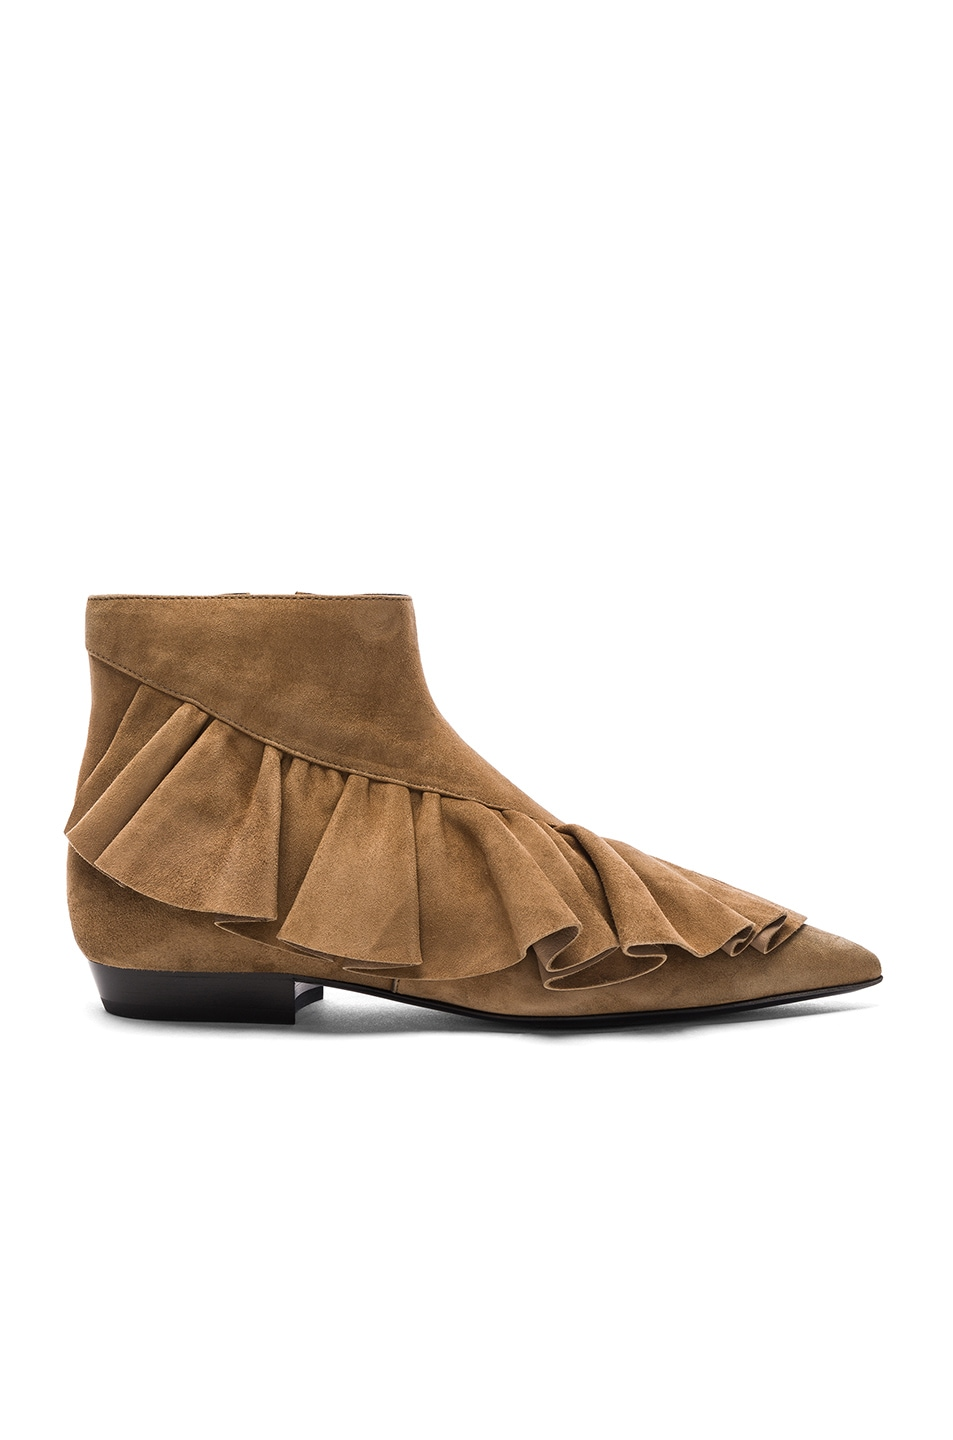 Image 1 of JW Anderson Suede Ruffle Booties in Desert